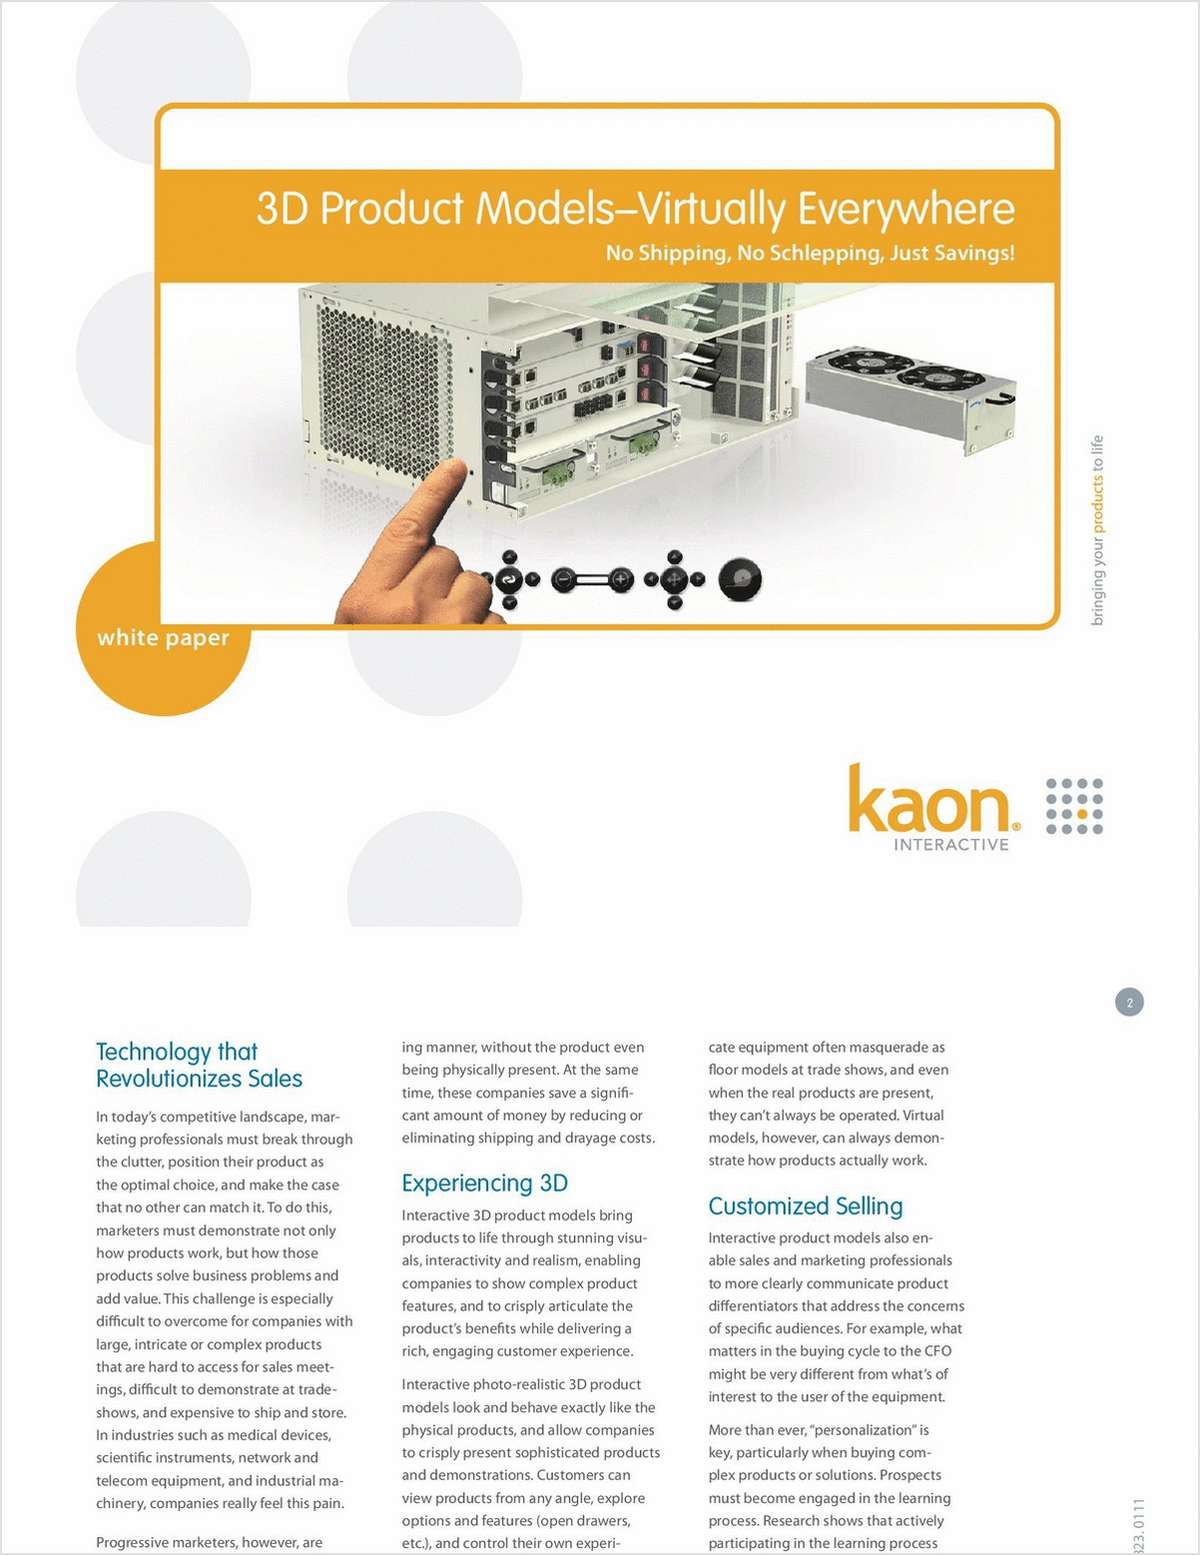 3D Product Demonstrations - Virtually Everywhere